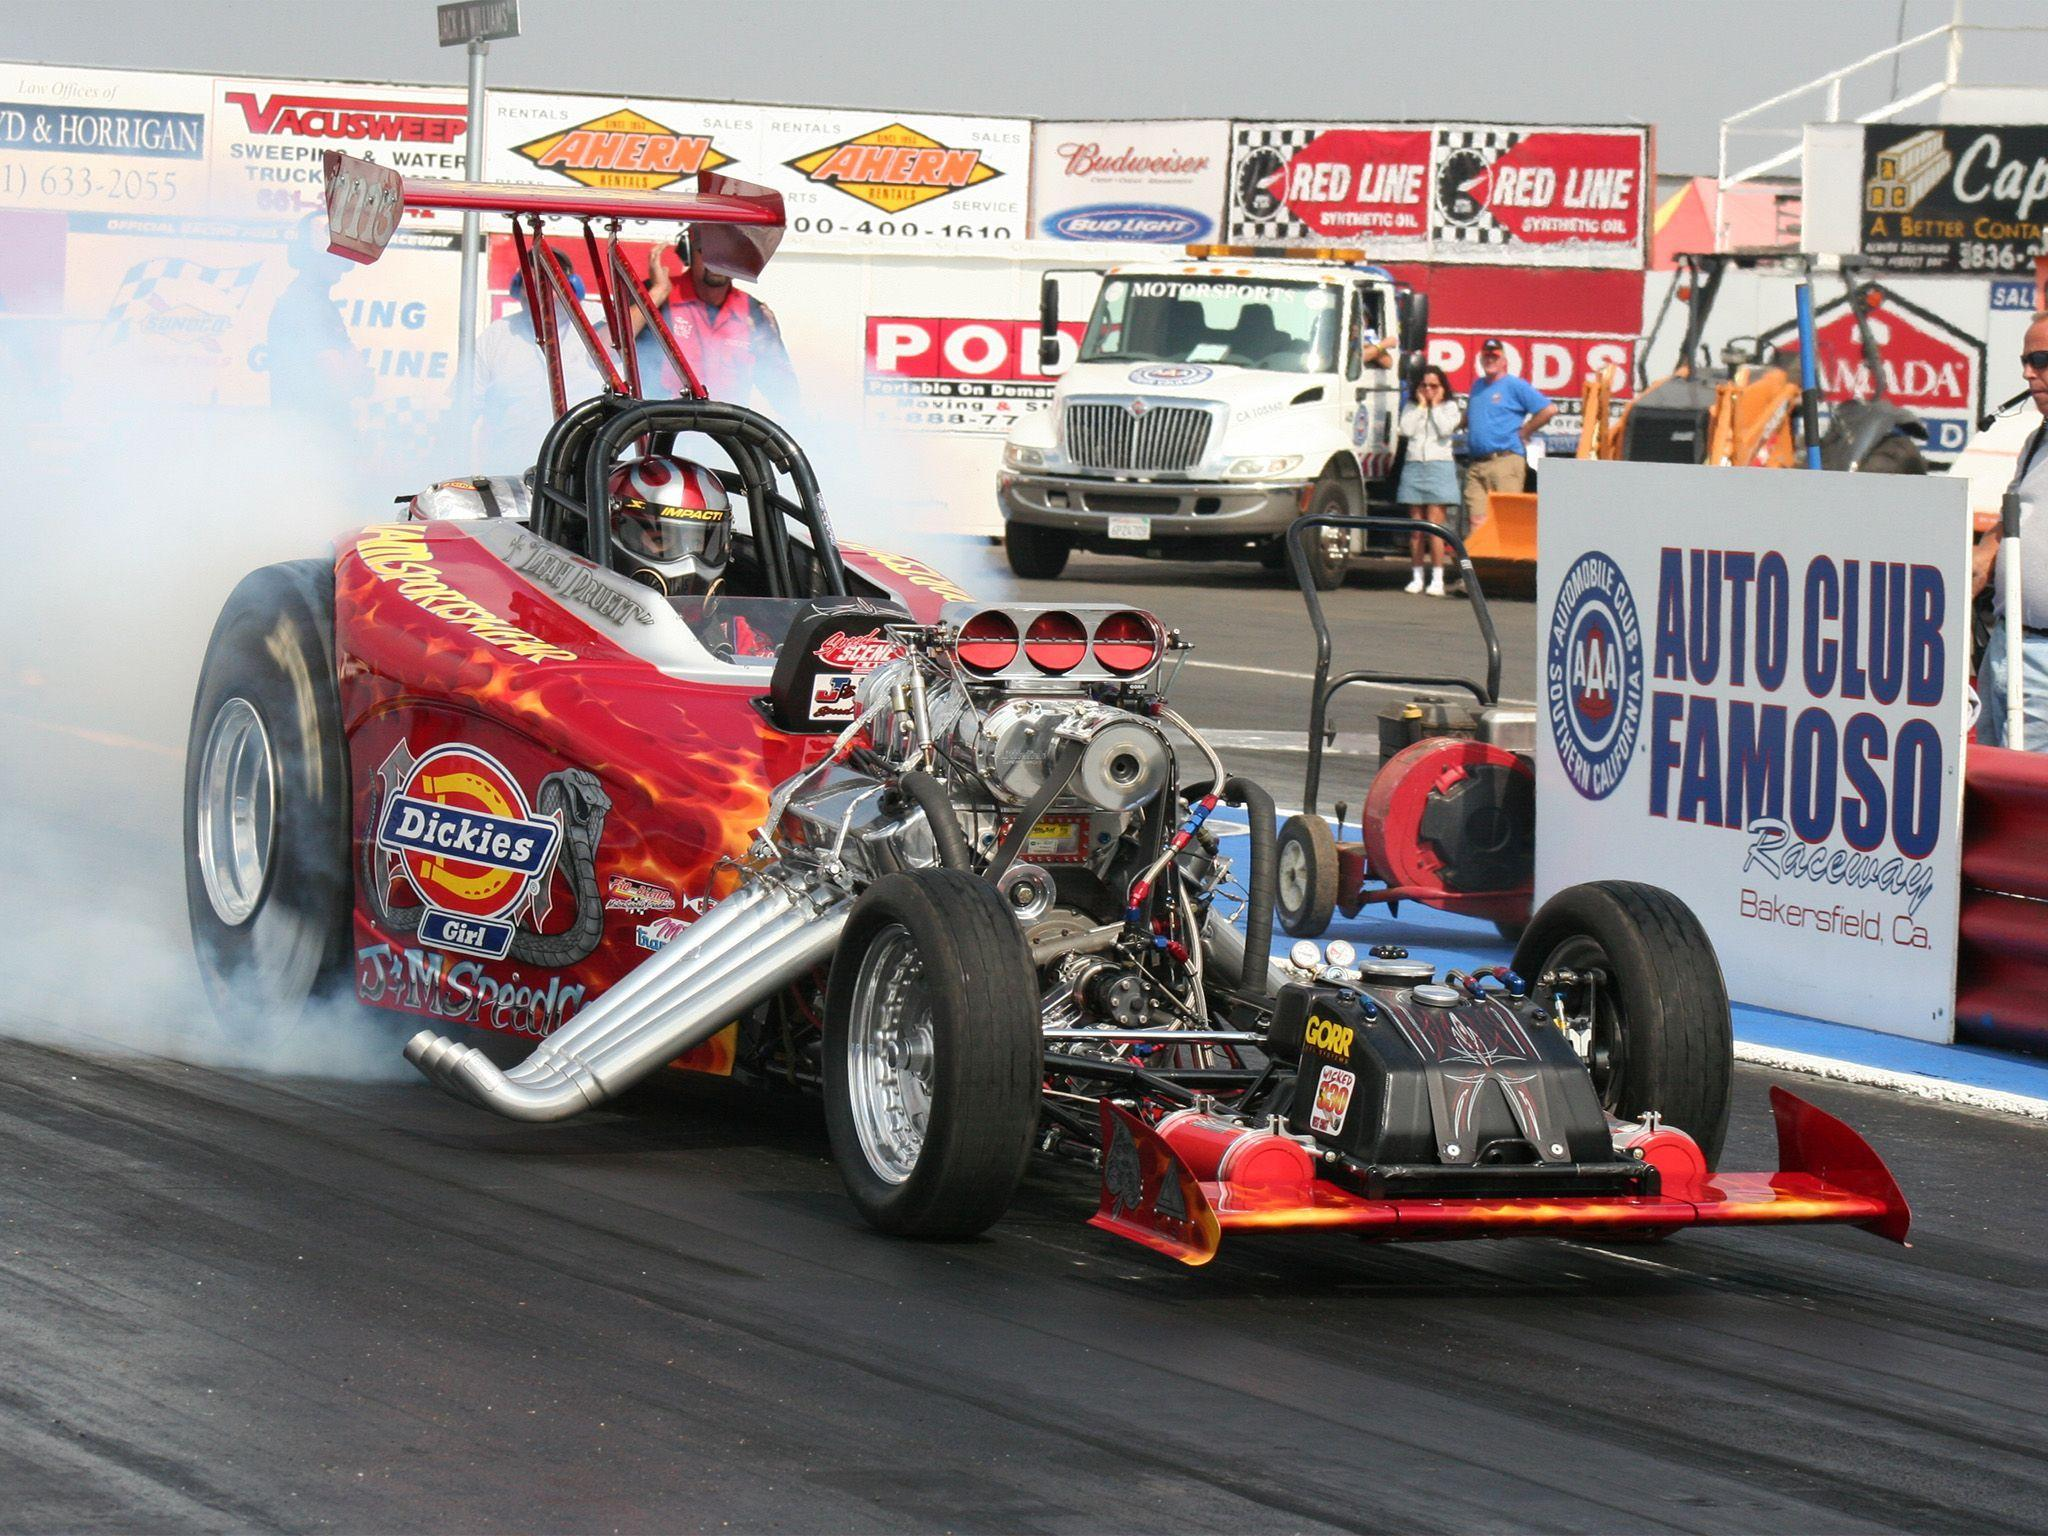 Drag racing race hot rod engine wallpaper | 2048x1536 | 71197 ...